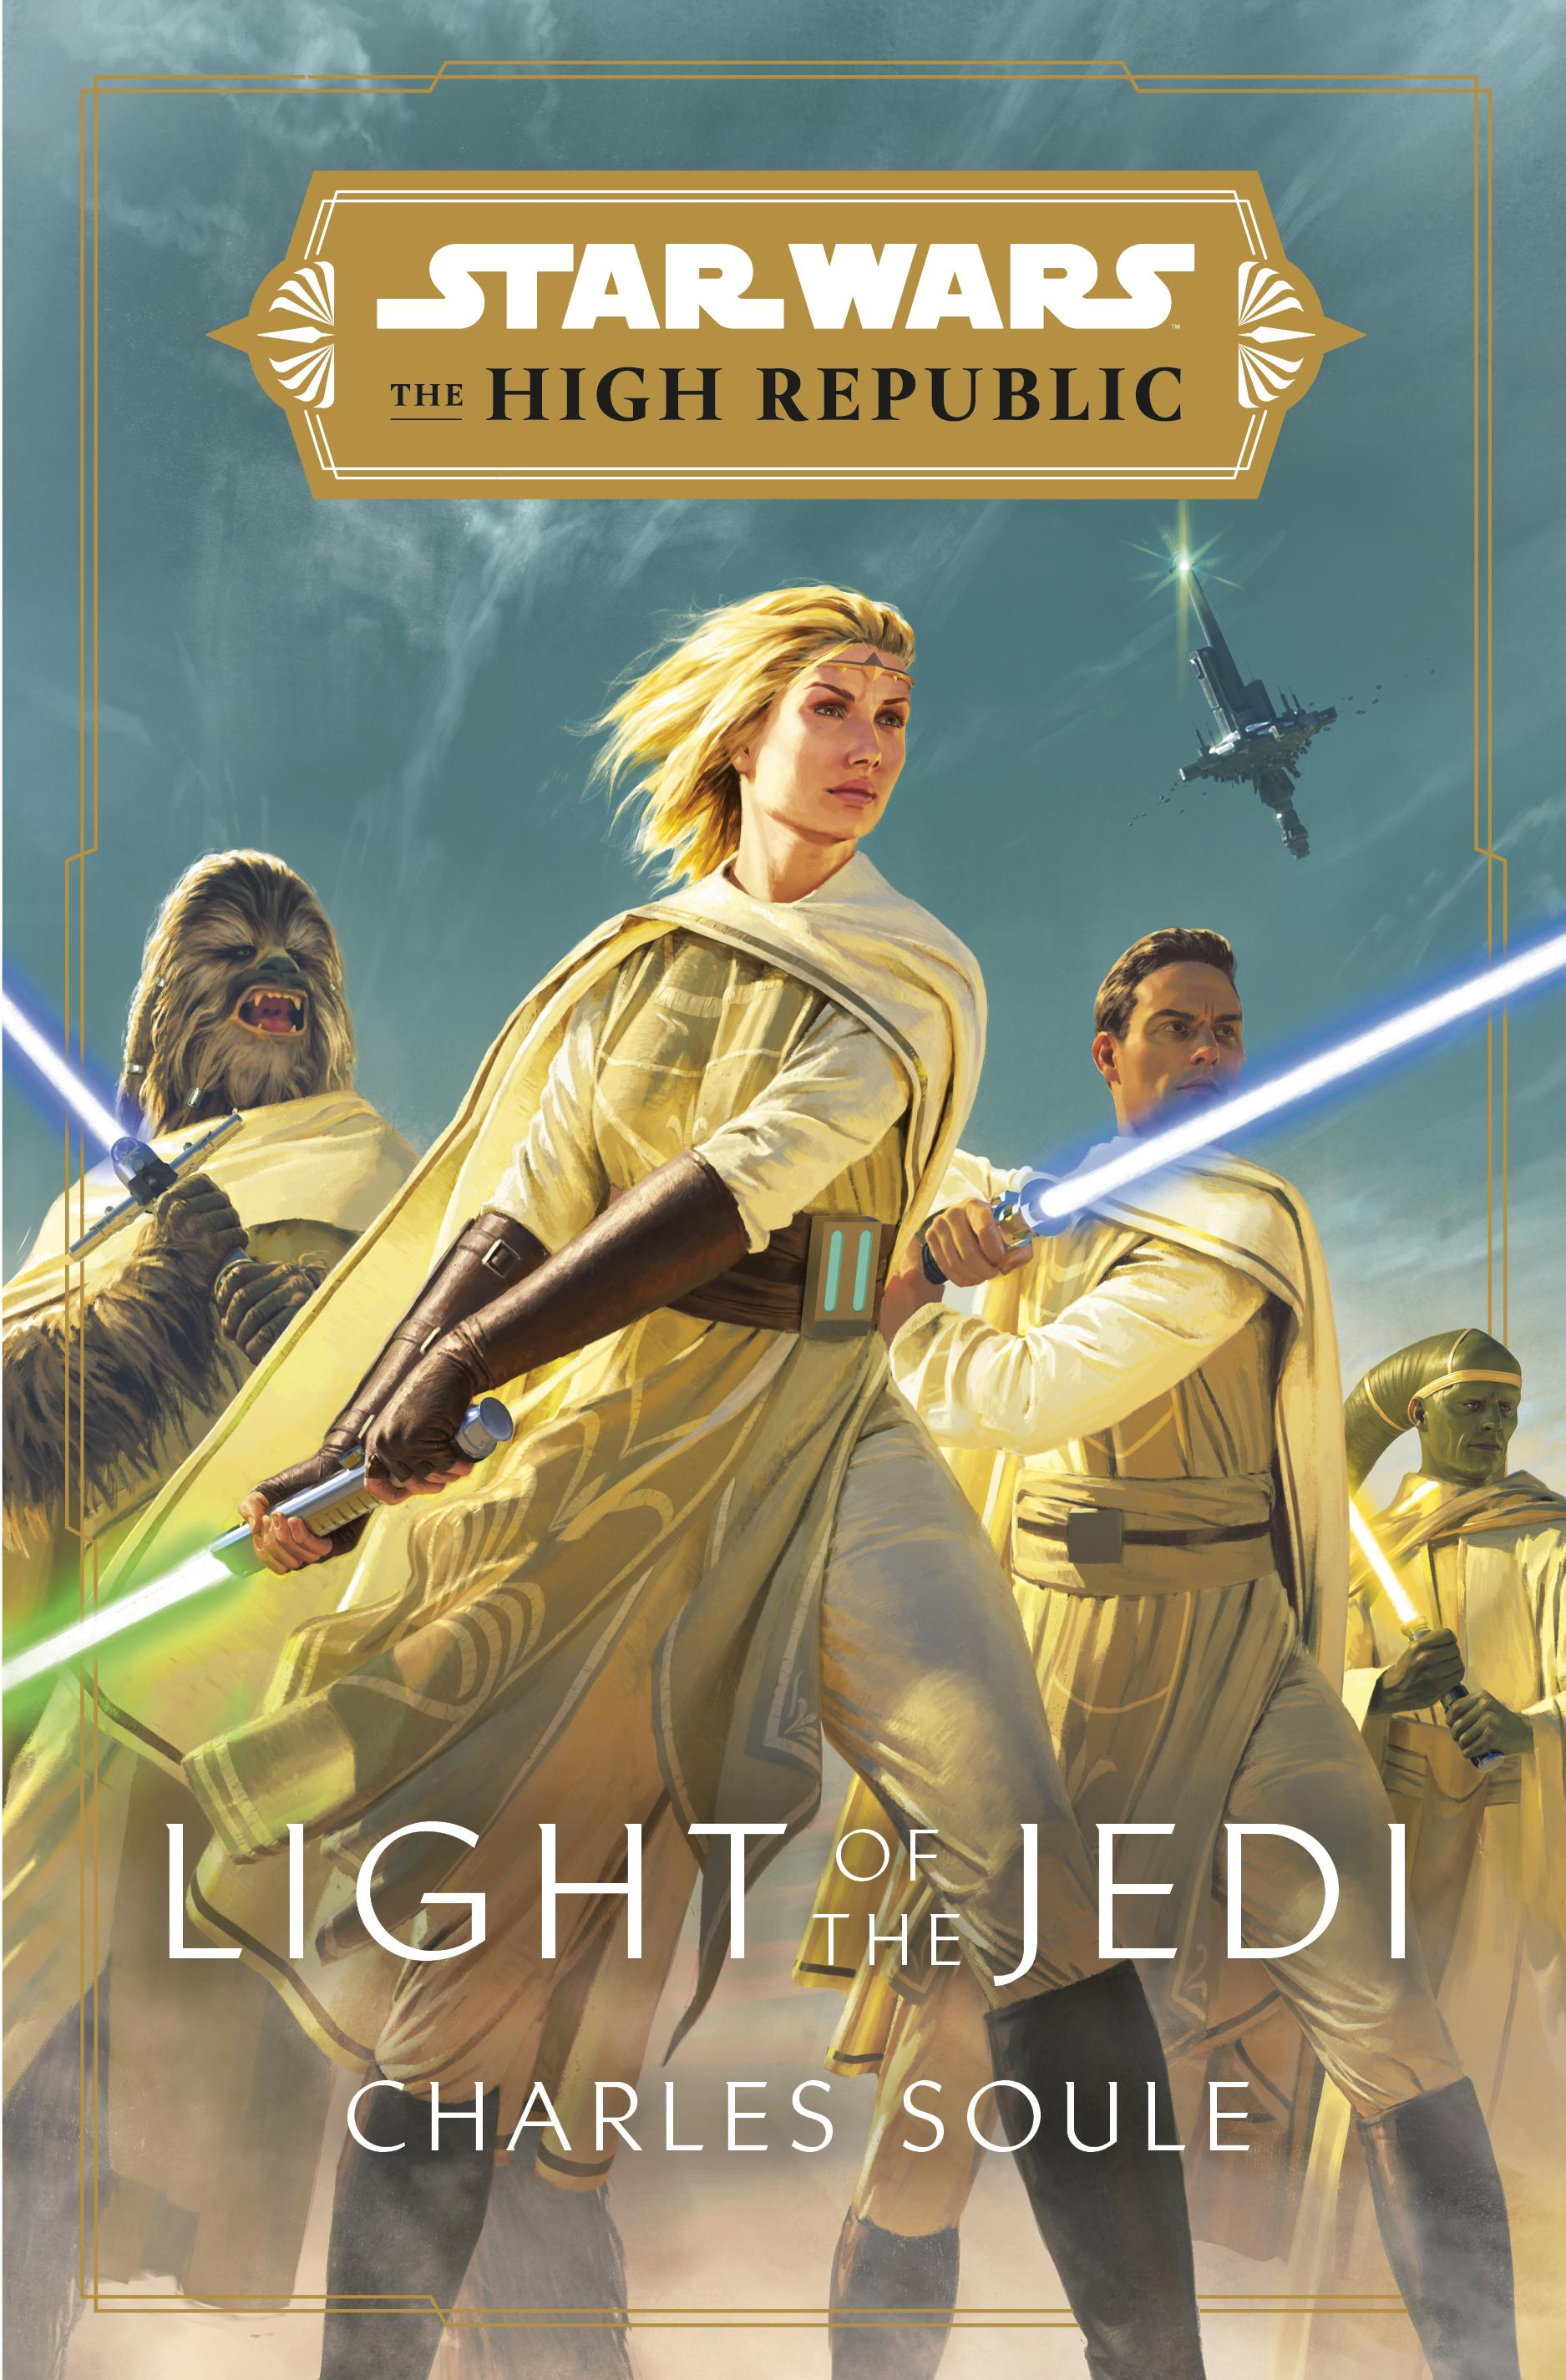 Star Wars - The High Republic - Light of the Jedi